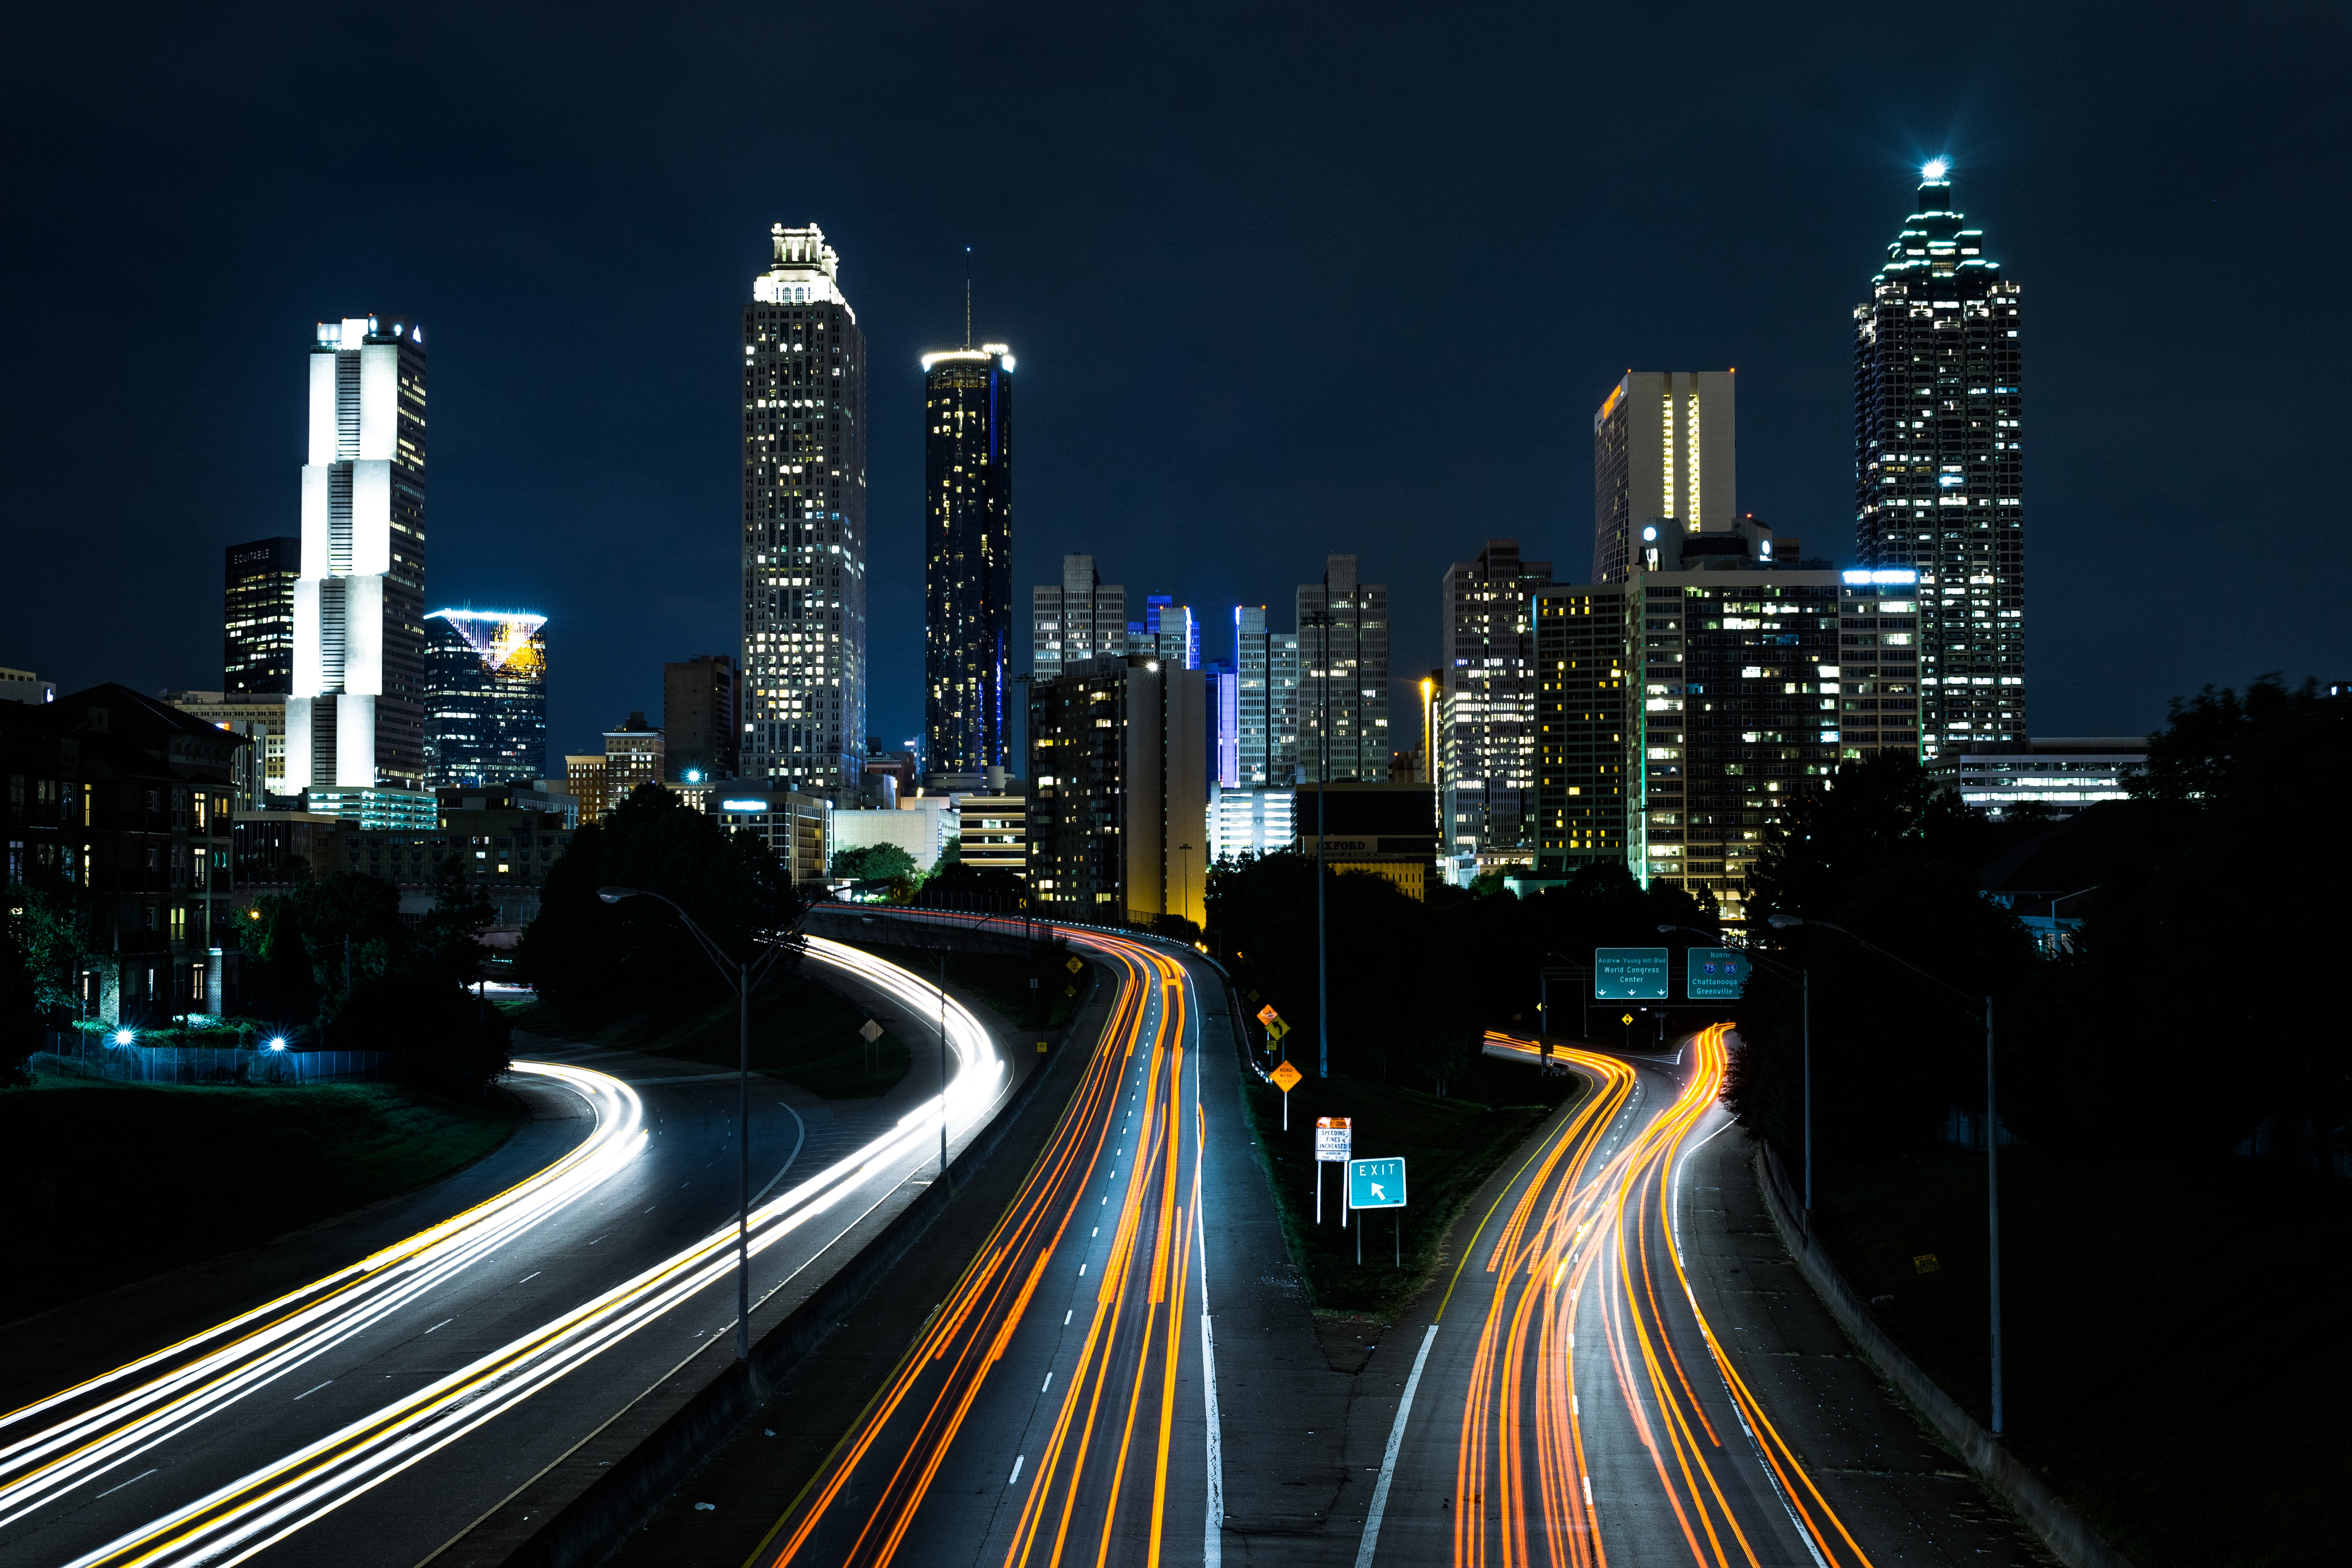 A night-time shot of traffic light trails on the Jackson Street Bridge with the cityscape in the background